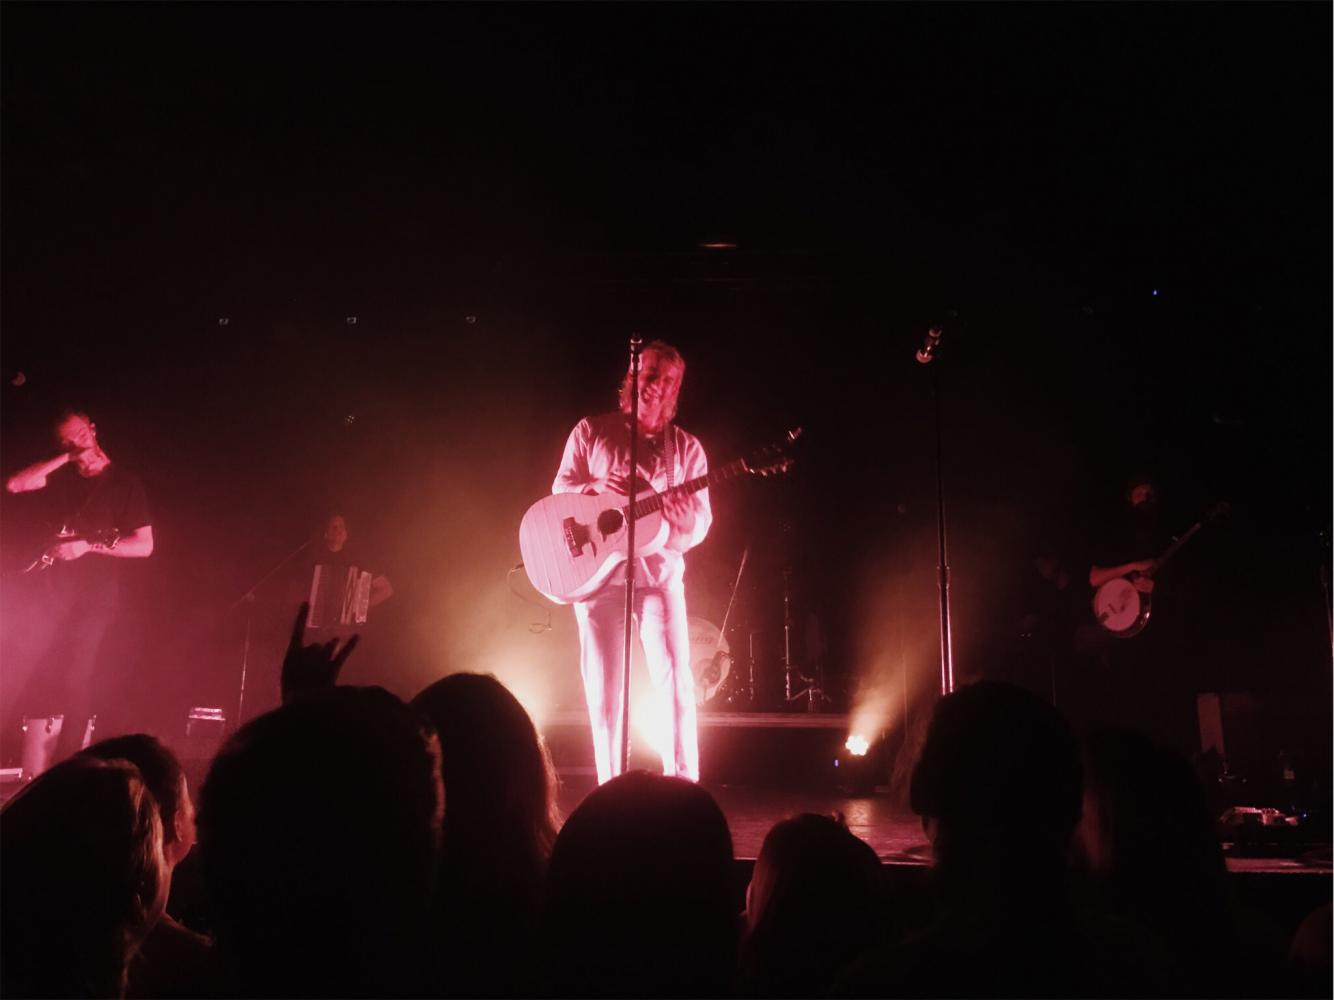 Judah and the Lion's passion shone brightly at their concert on October 1